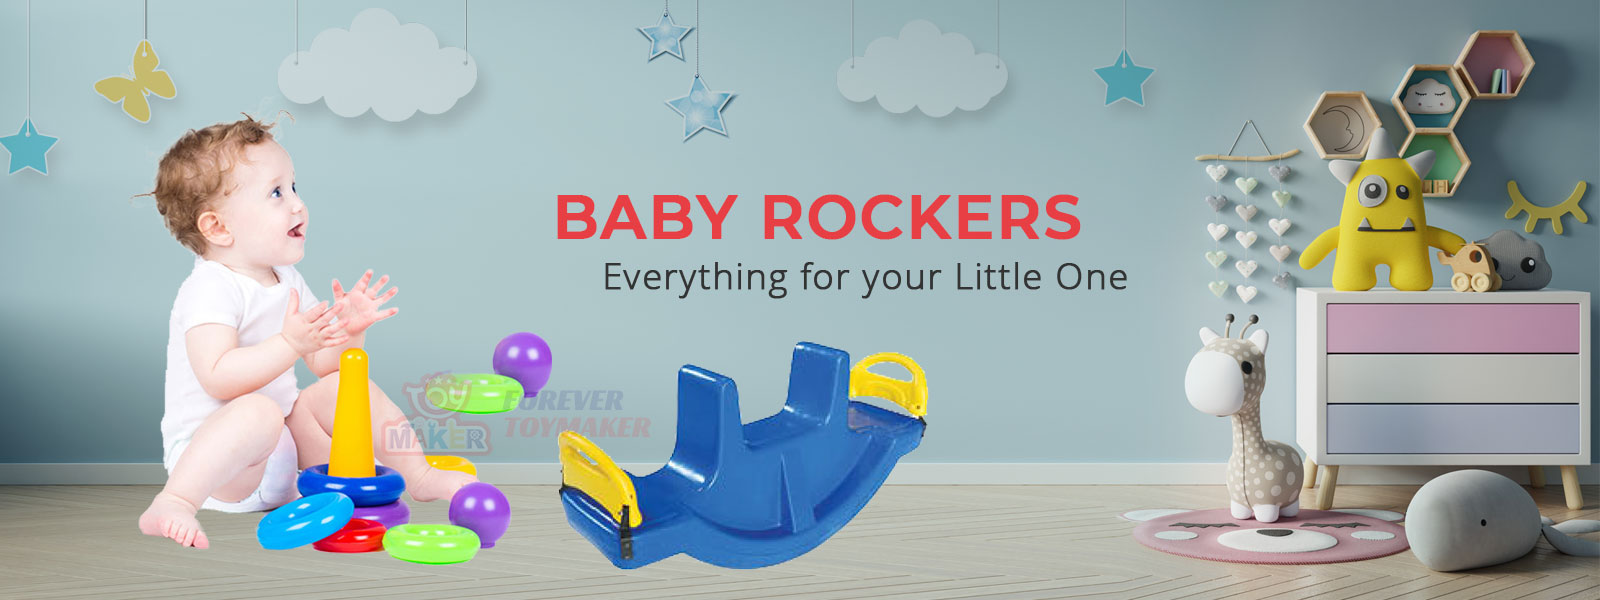 Baby Rockers Manufacturers in Delhi